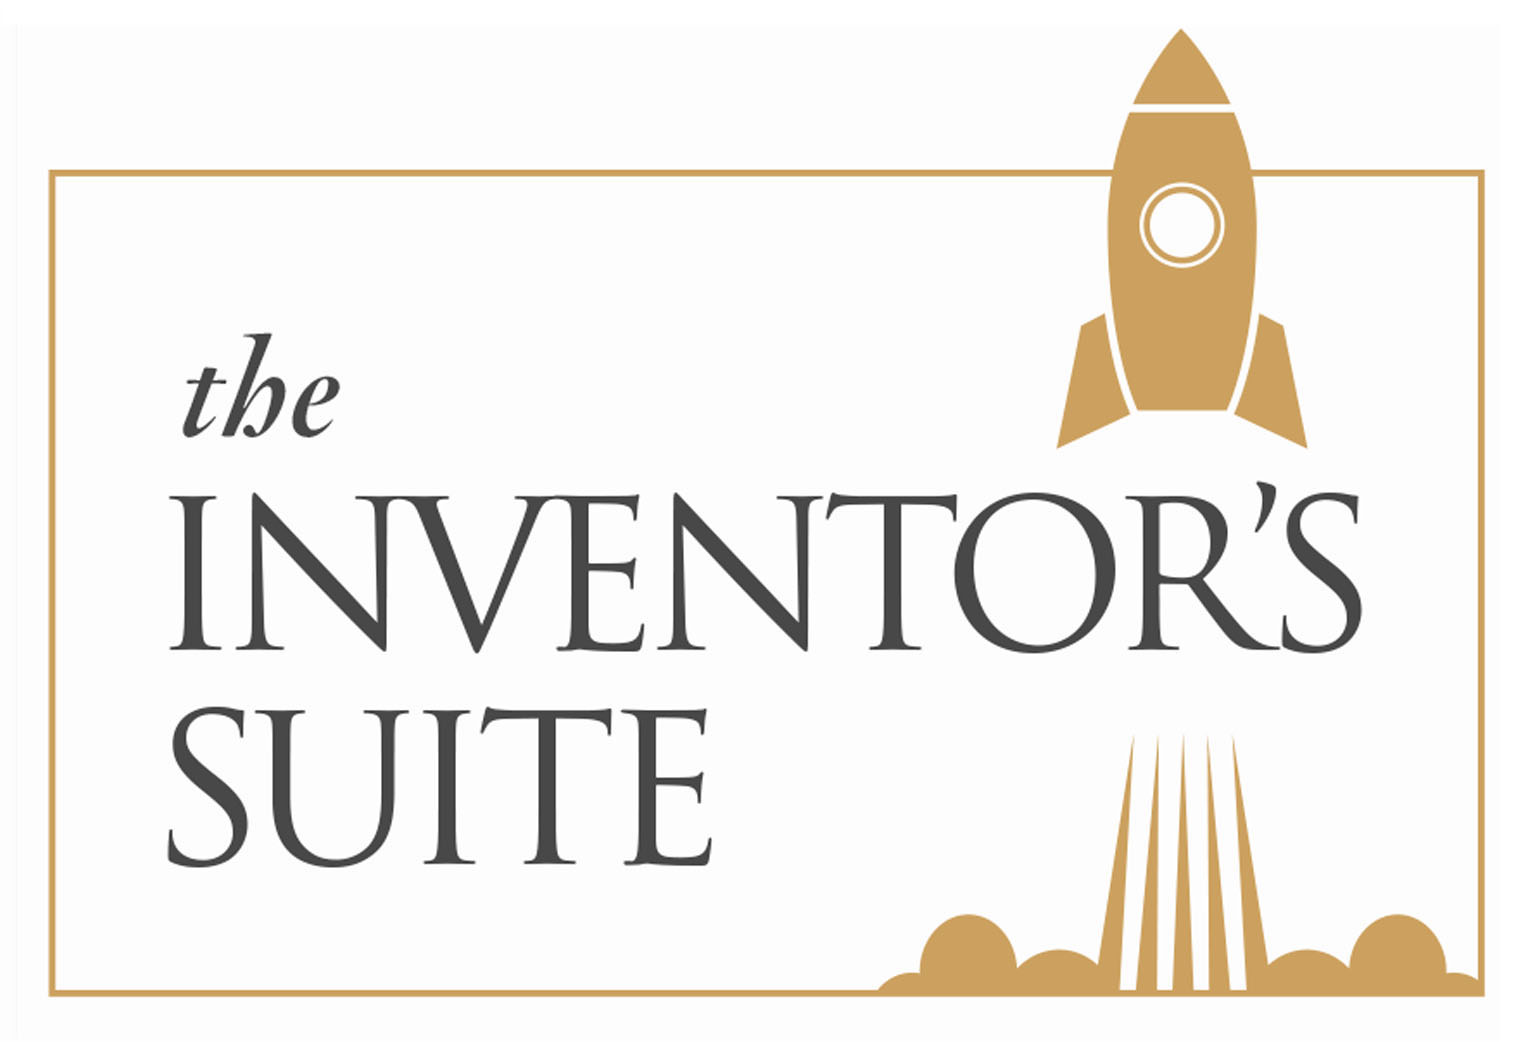 Dr. & Sir Inventor's Suite Inventions